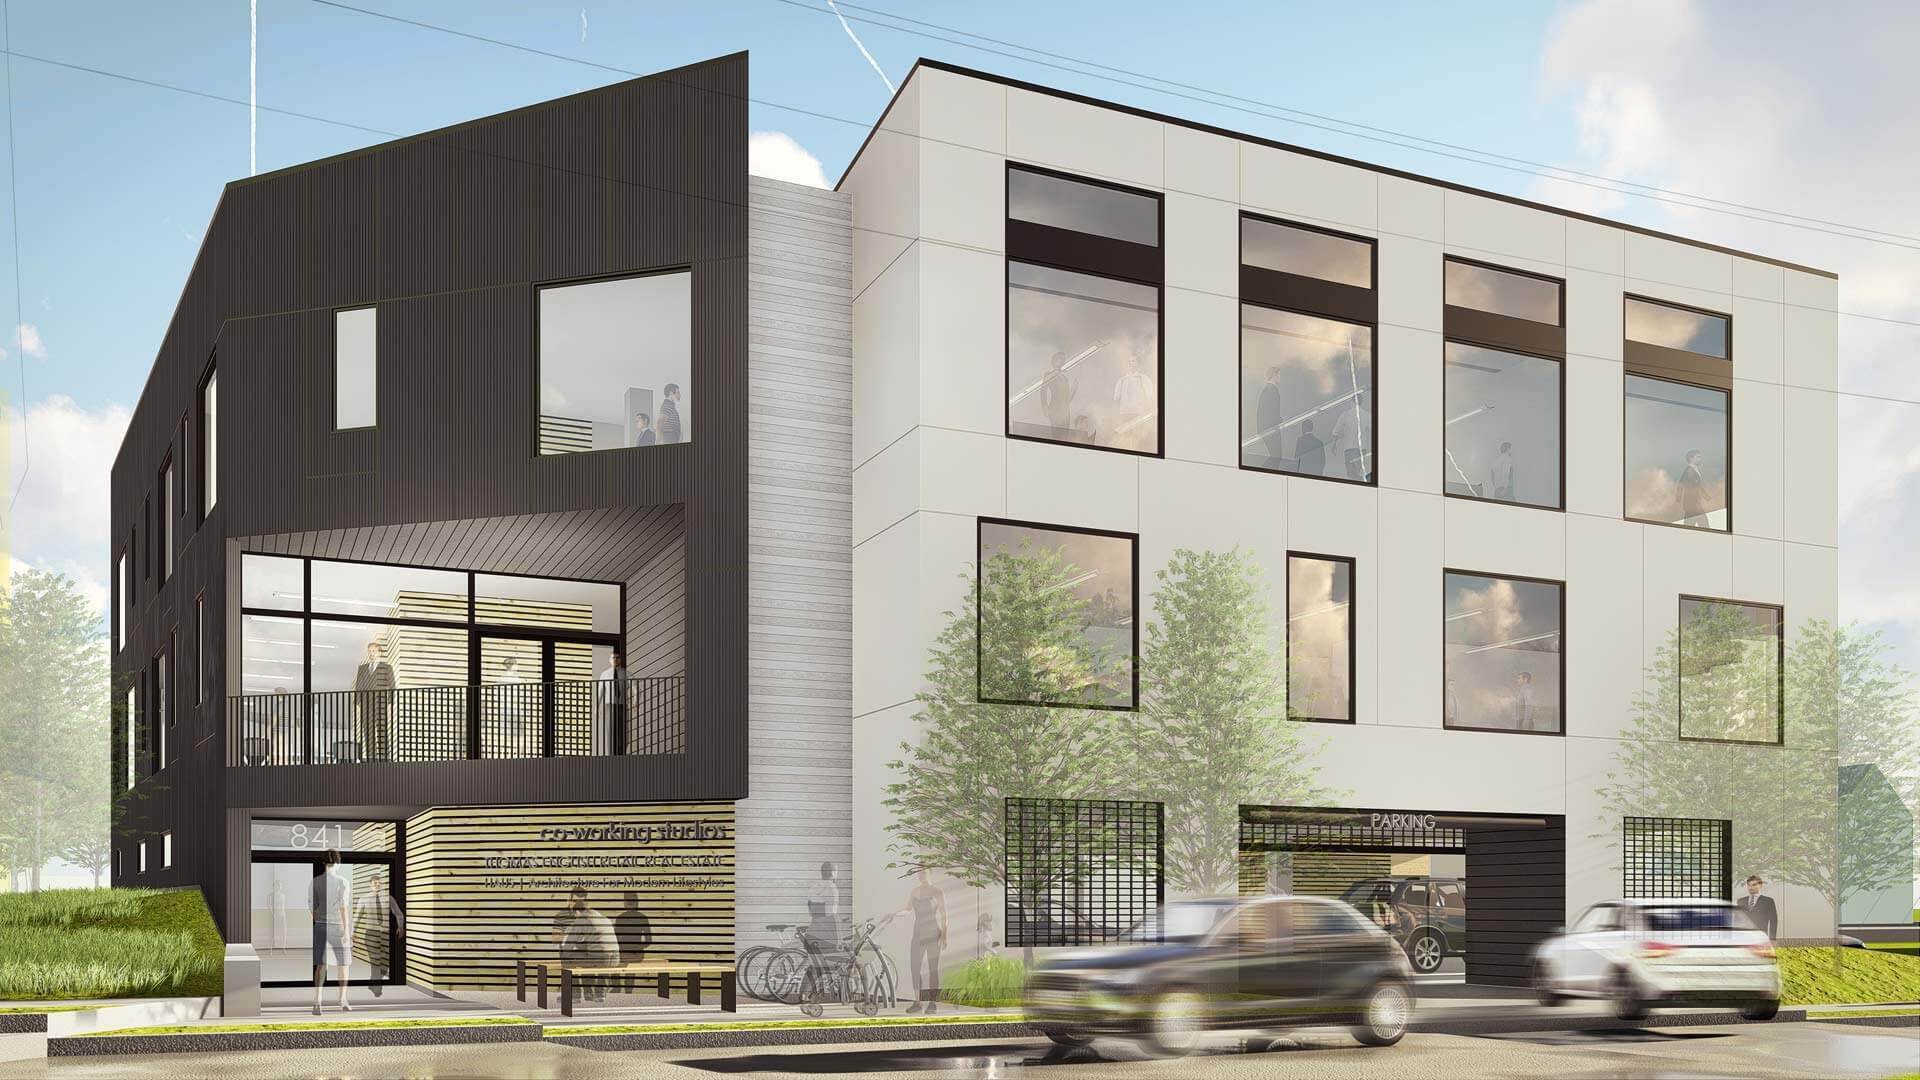 Main Building Entrance North Elevation Design Development (Dec 2017) - G BLOC MIXED USE Development - Broad Ripple North Village - Urban Infill - Indianapolis - Christopher Short, Indianapolis Architect, HAUS Architecture For Modern Lifestyles, WERK | Building Modern, Thomas English Retail Real Estate